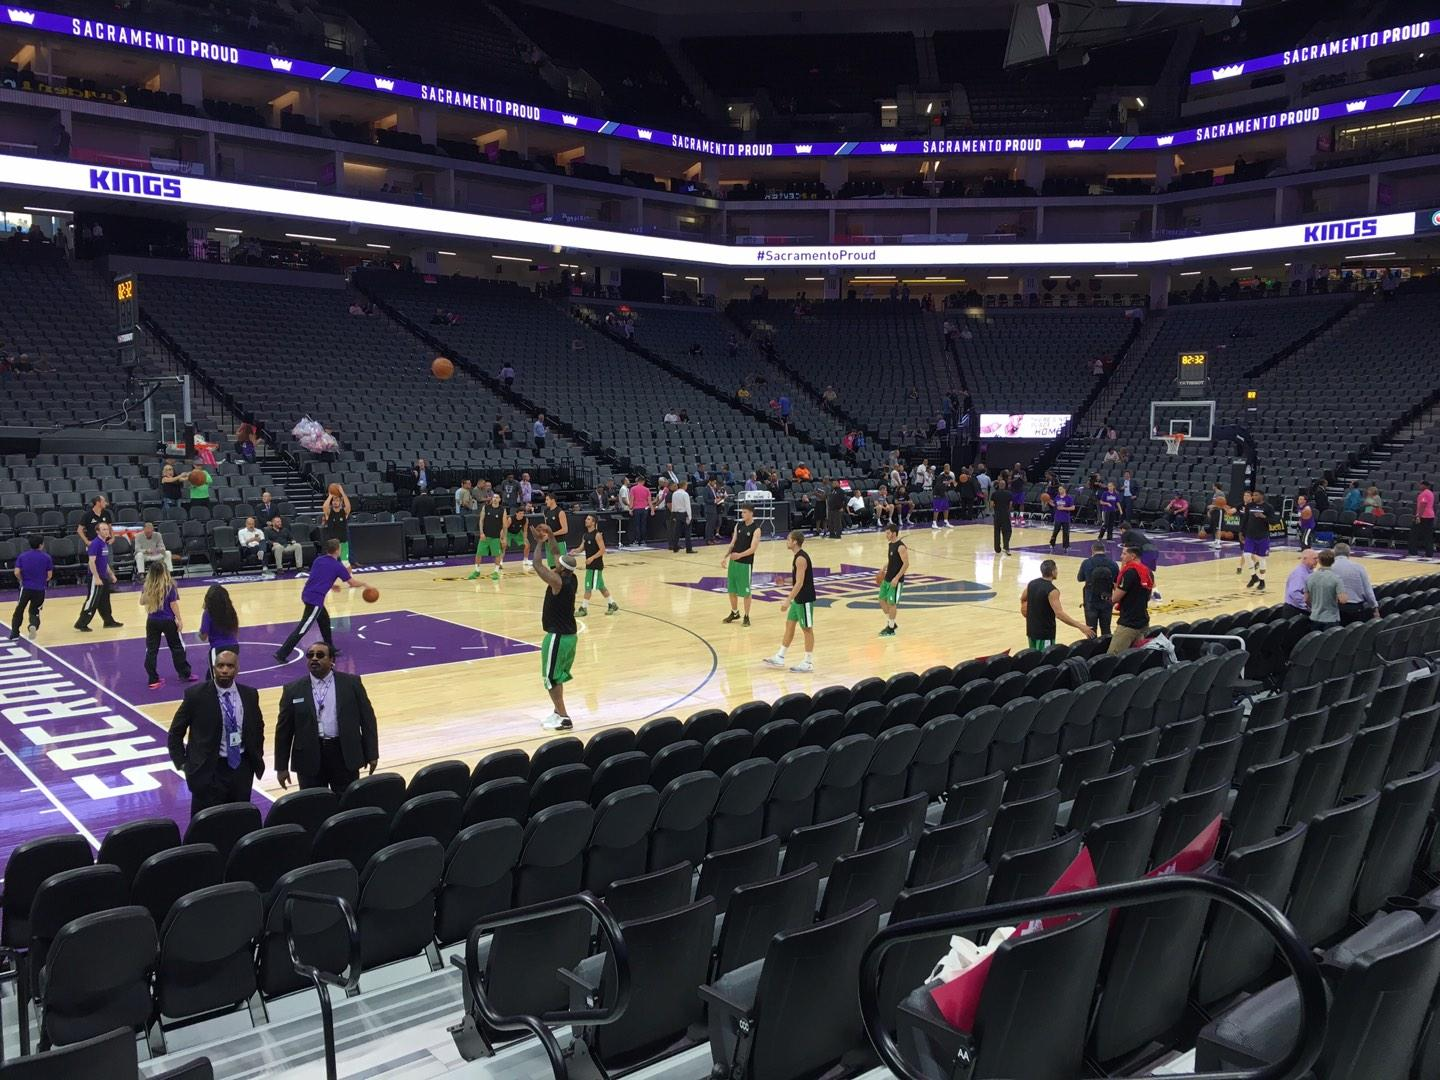 Golden 1 Center Sección 122 Fila Cc Asiento 1